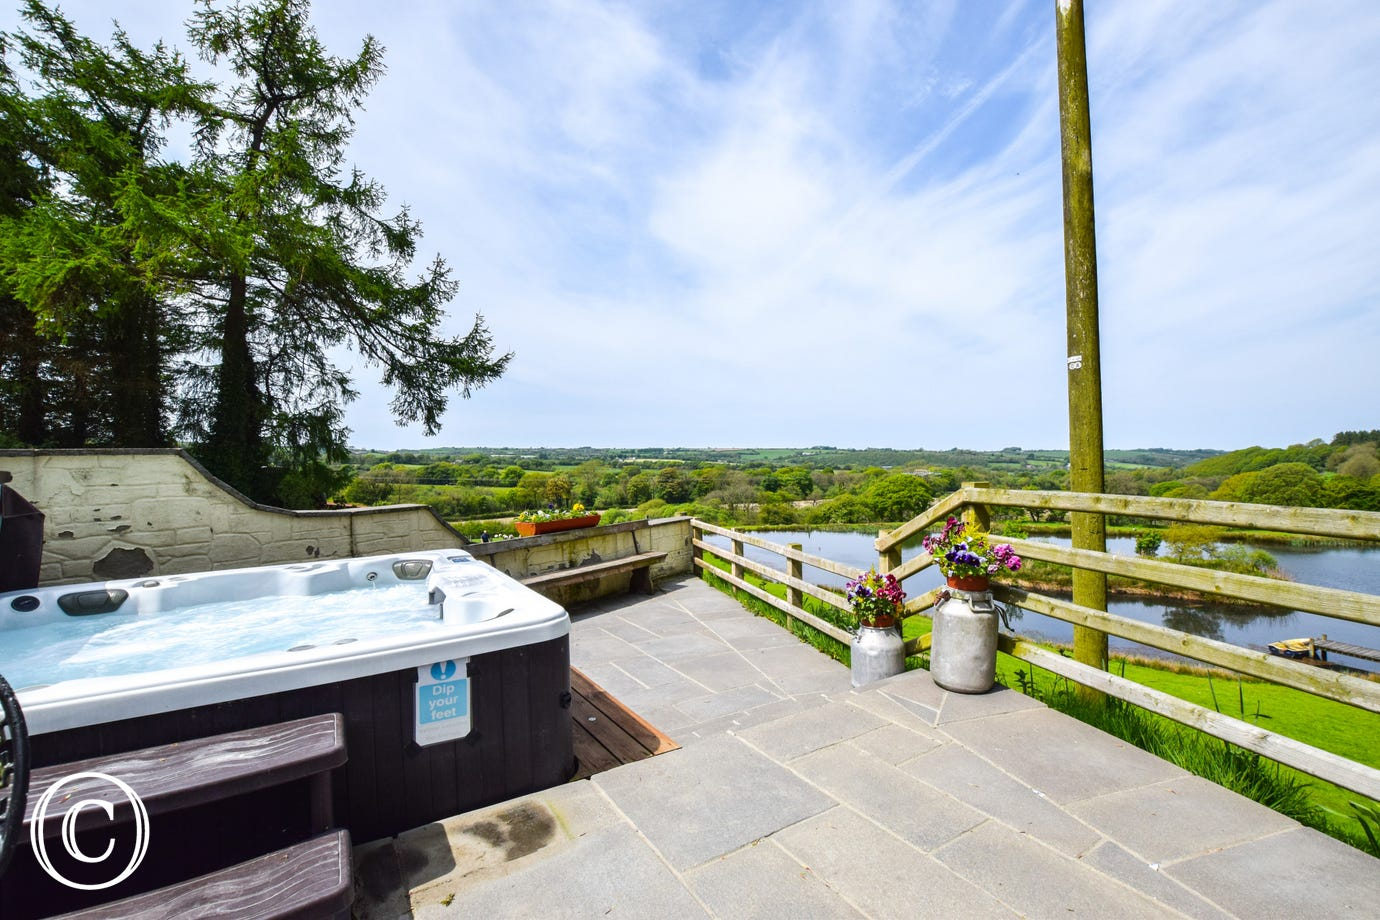 Hot-tub with views over the lake and surrounding countryside.